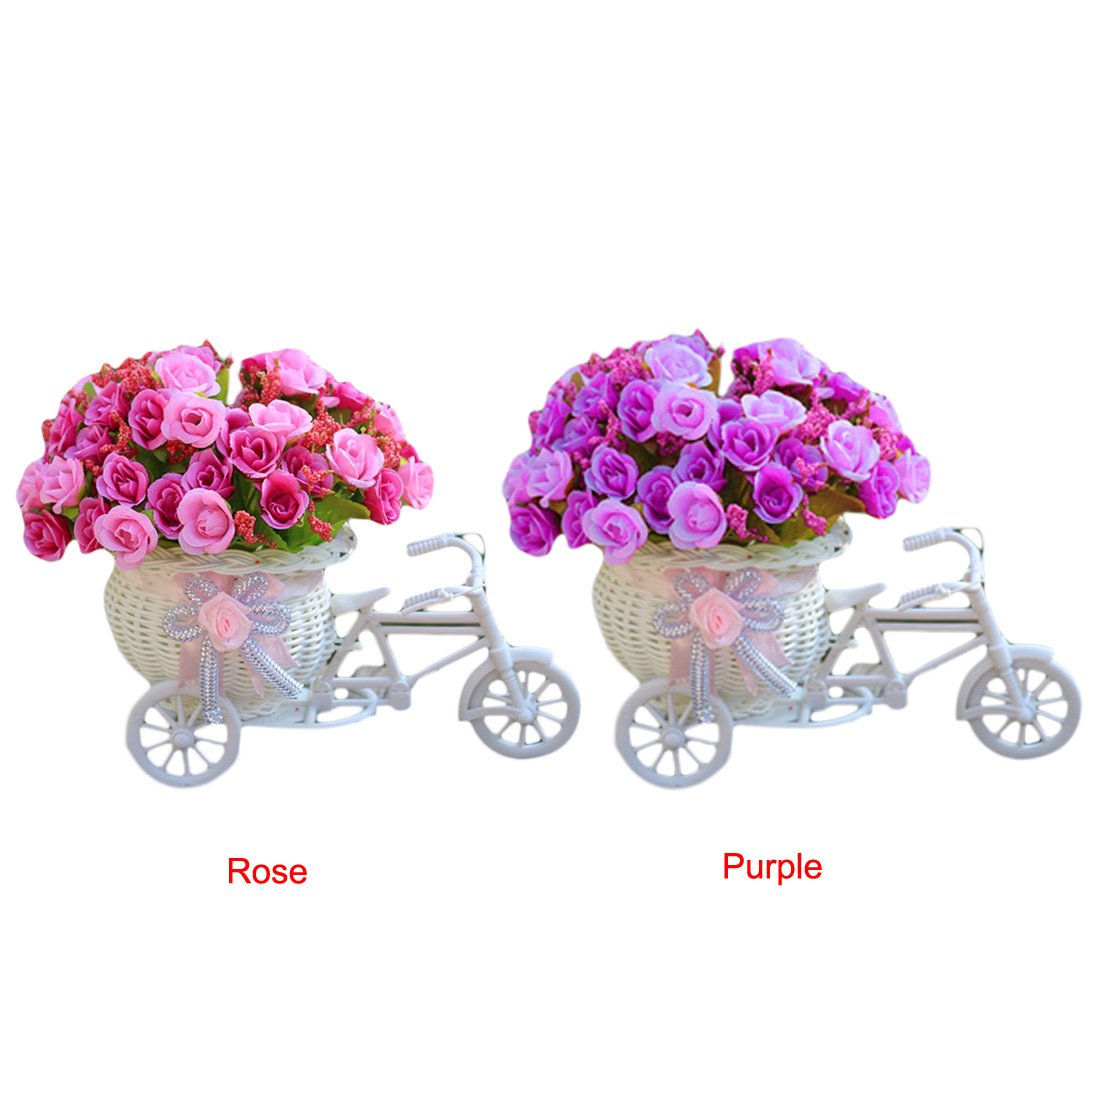 Artificial Decorations Home Furnishing Decorative Floats Bicycle Basket Weaving Simulation Set Diamond Artificial Flowers With Vase Clients First Festive & Party Supplies